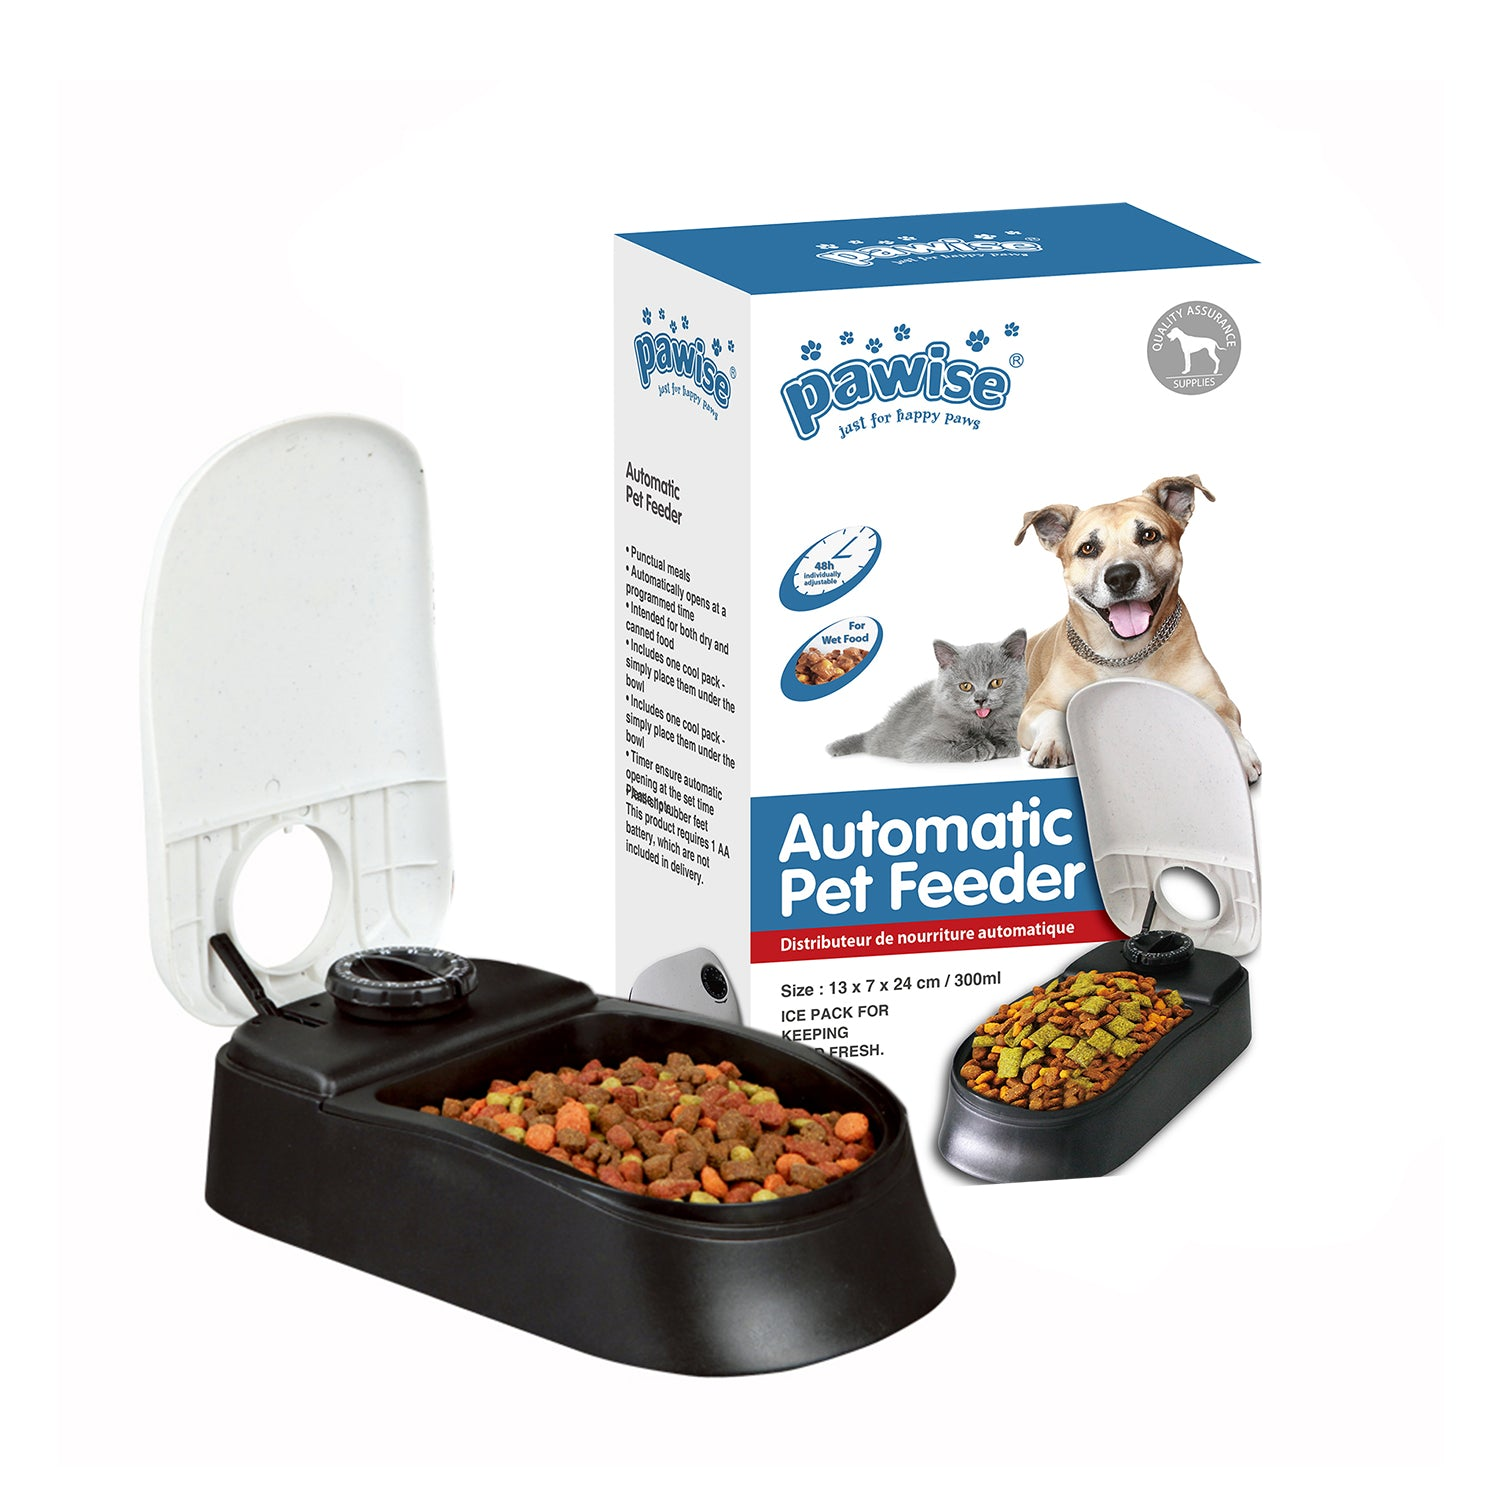 Automatic Food Dispenser For Cats And Dogs 1 Meal All For Paws Pet